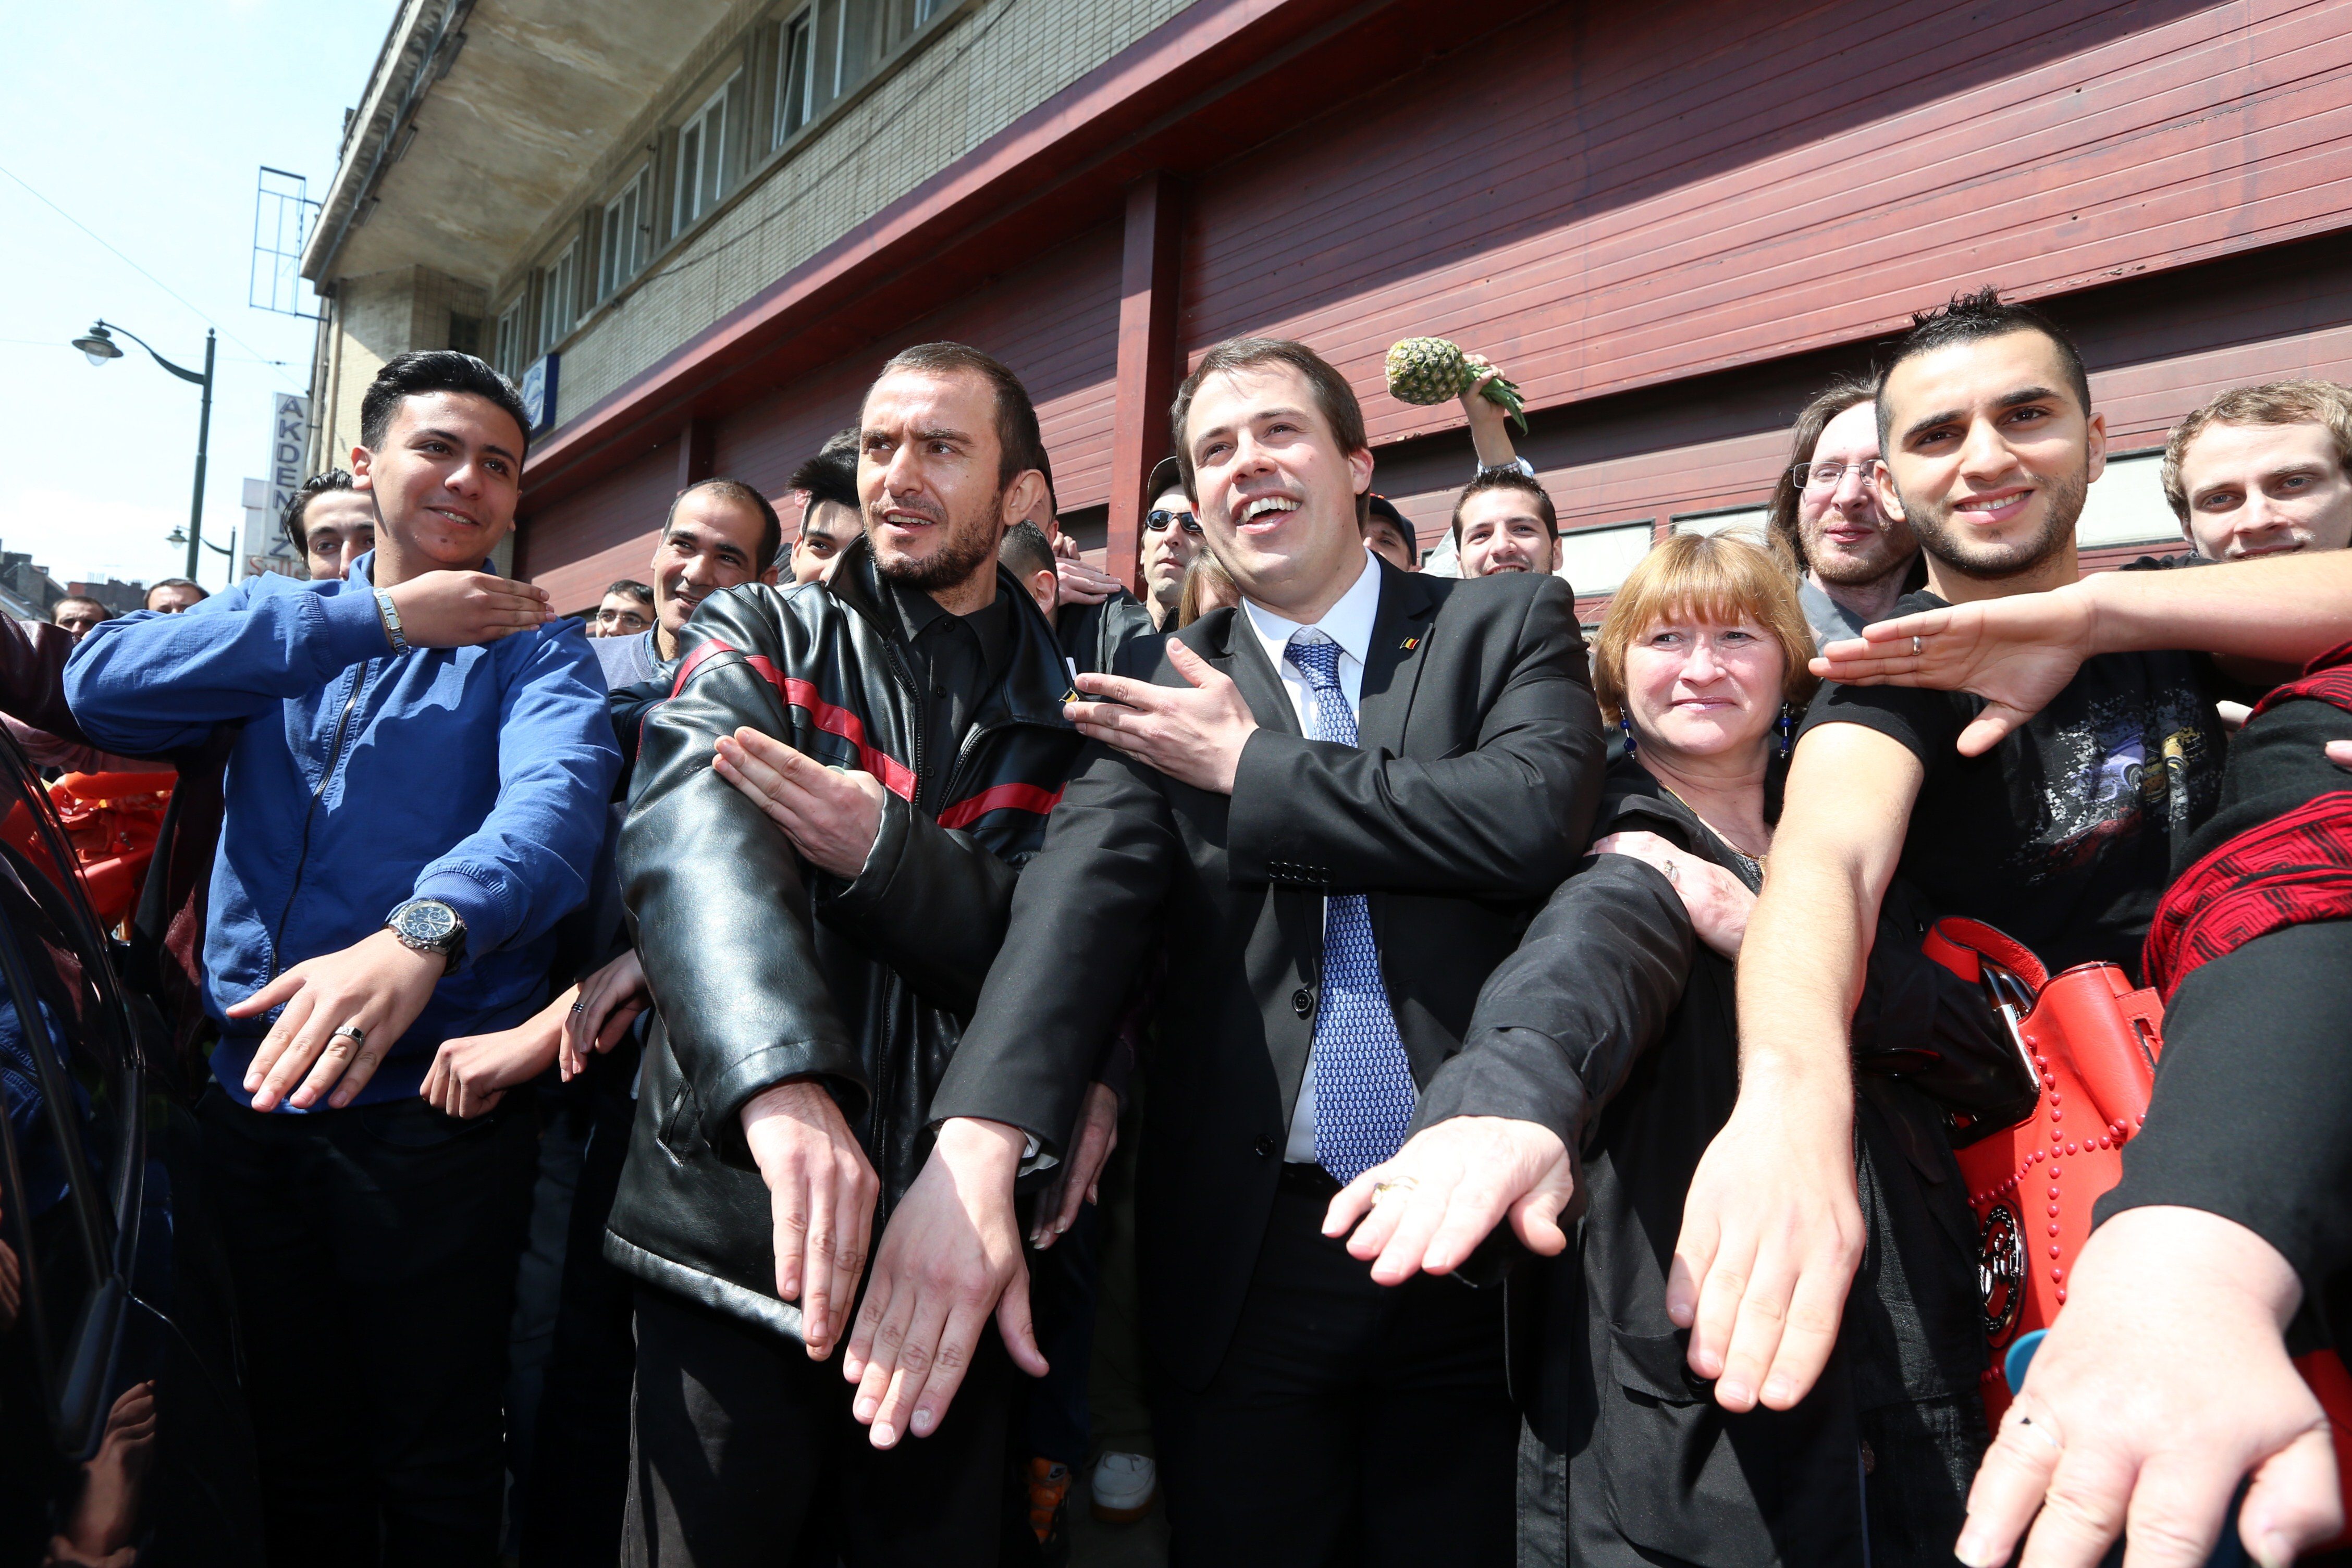 The leader of  Debout Les Belges!,  far-right lawmaker Laurent Louis (C) perform the 'quenelle' gesture ahead of the anti-Semitic congress,  First European Conference of Dissidence , organised by Chamber member Laurent Louis in Anderlecht, outside Brussels, on May 4, 2014.